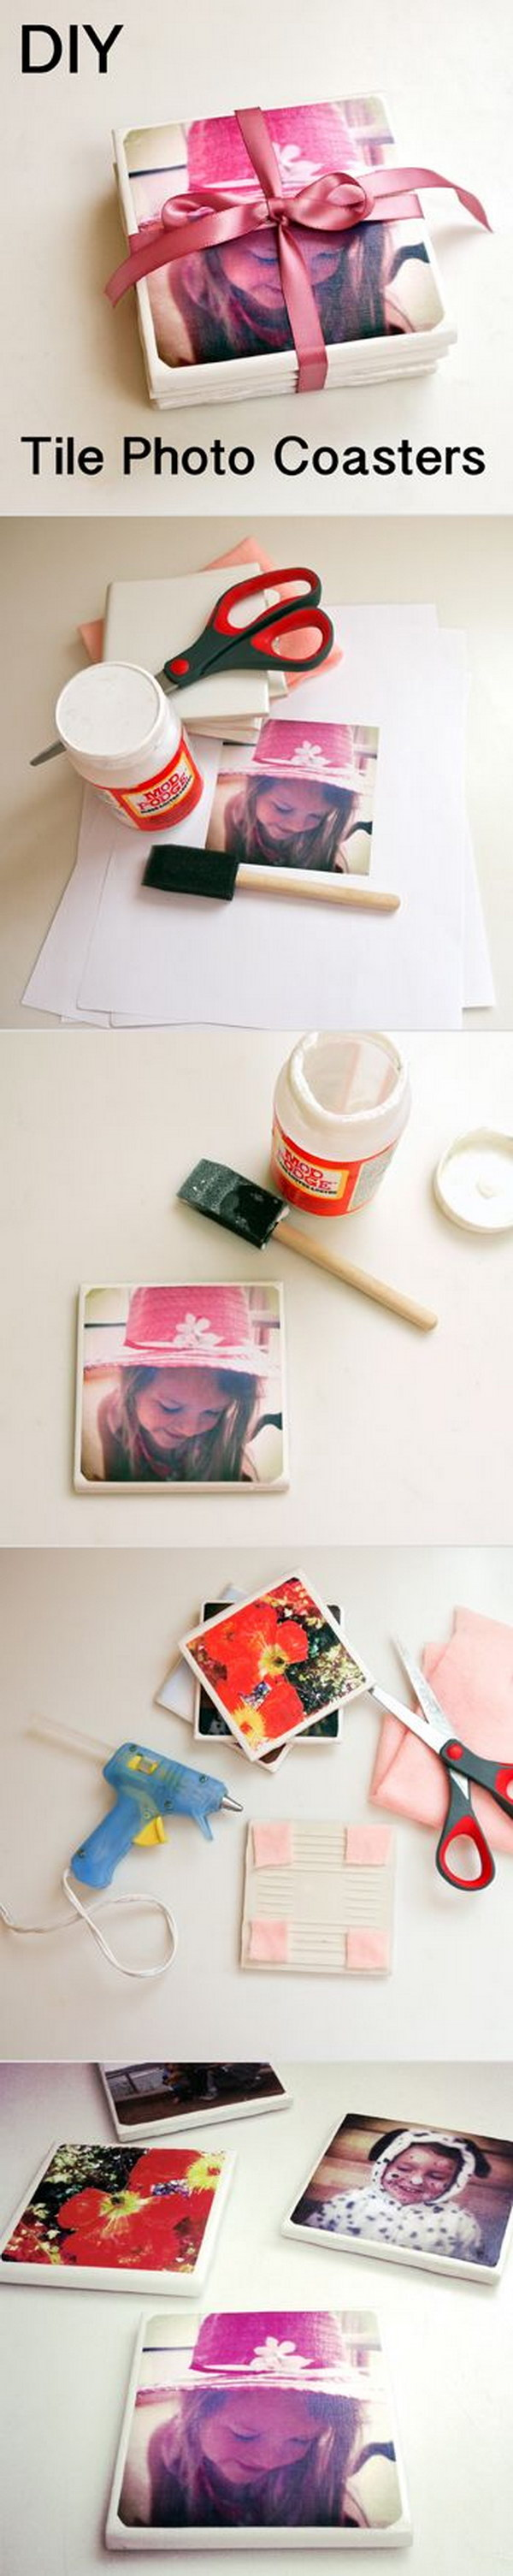 1 DIY Photo Coasters